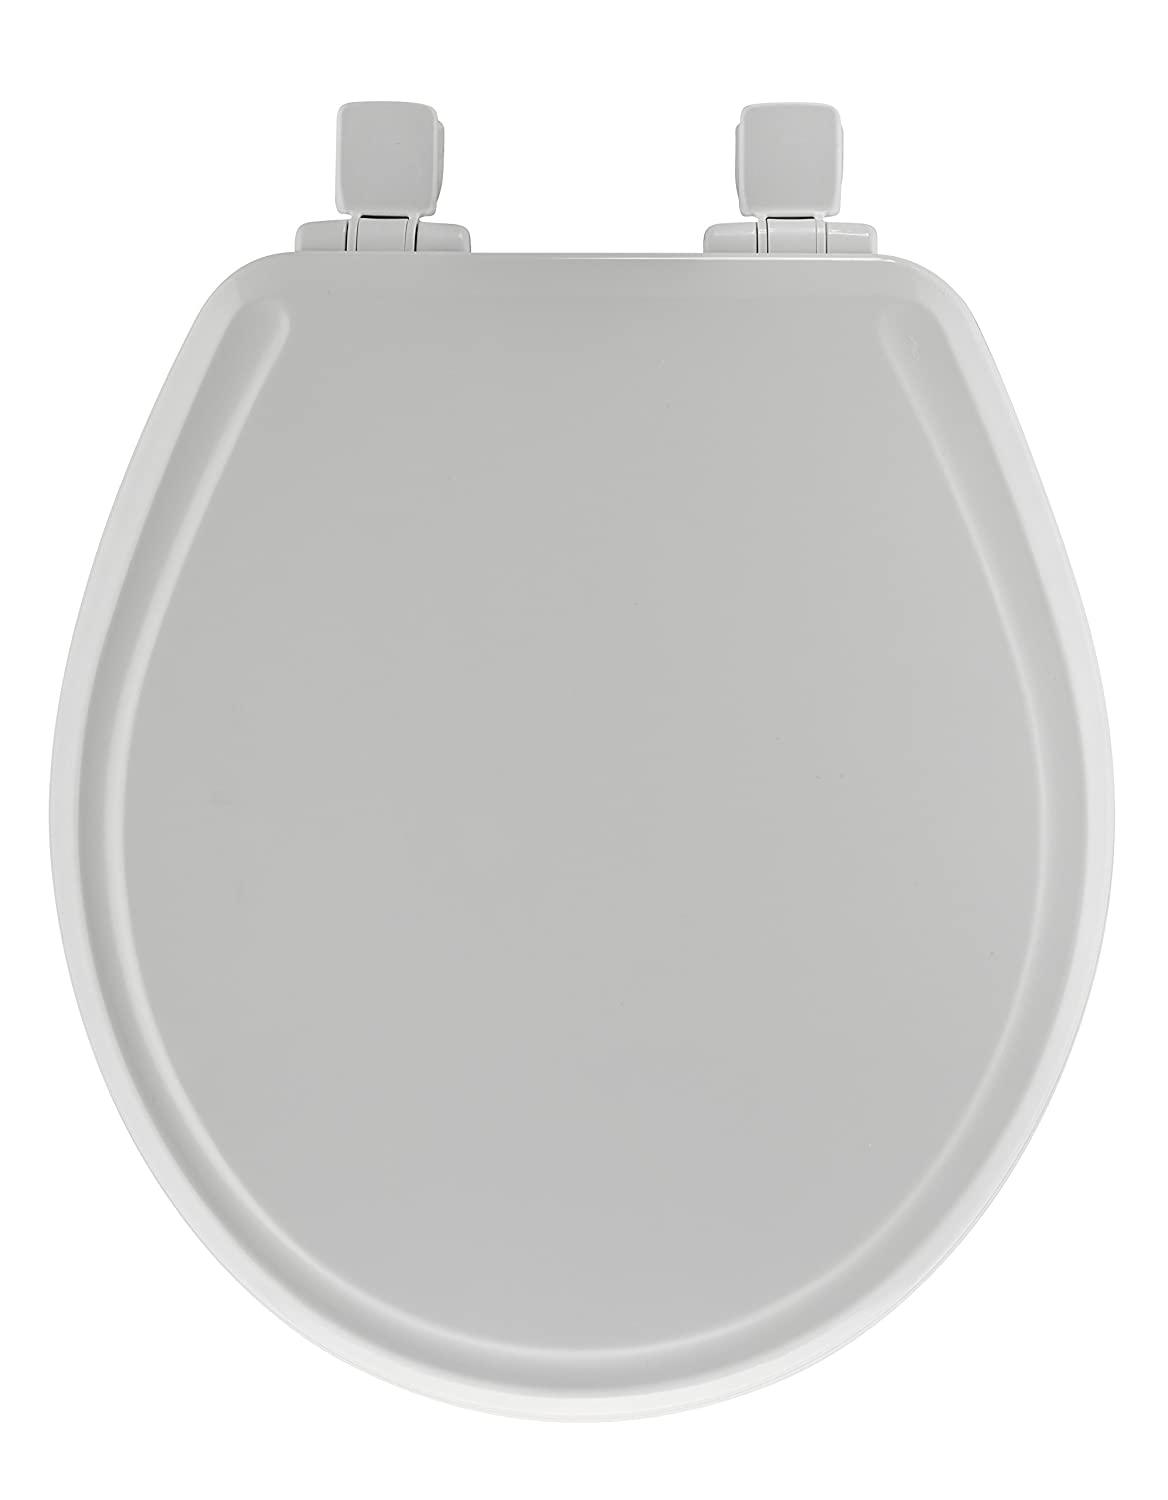 Brilliant The Best Toilet Seat Top 4 Reviewed In 2019 The Smart Onthecornerstone Fun Painted Chair Ideas Images Onthecornerstoneorg